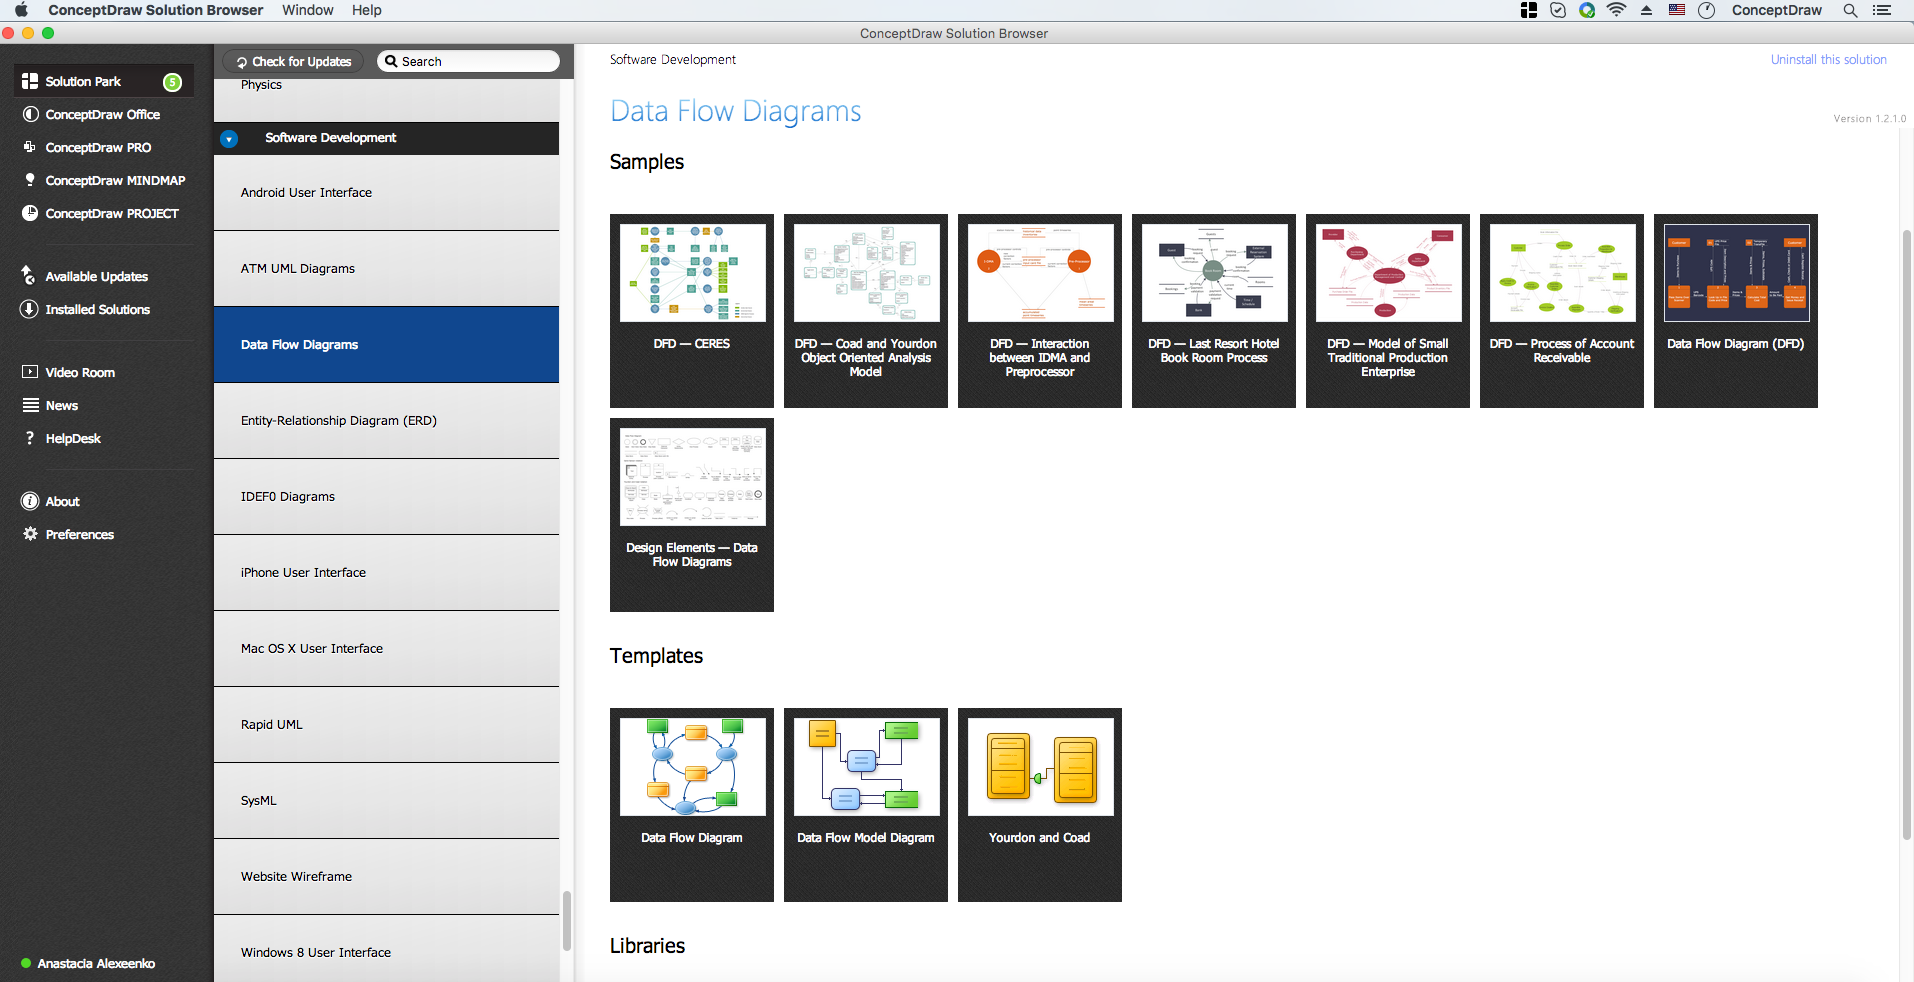 data flow diagram softwaredata flow diagrams solution in conceptdraw solution browser